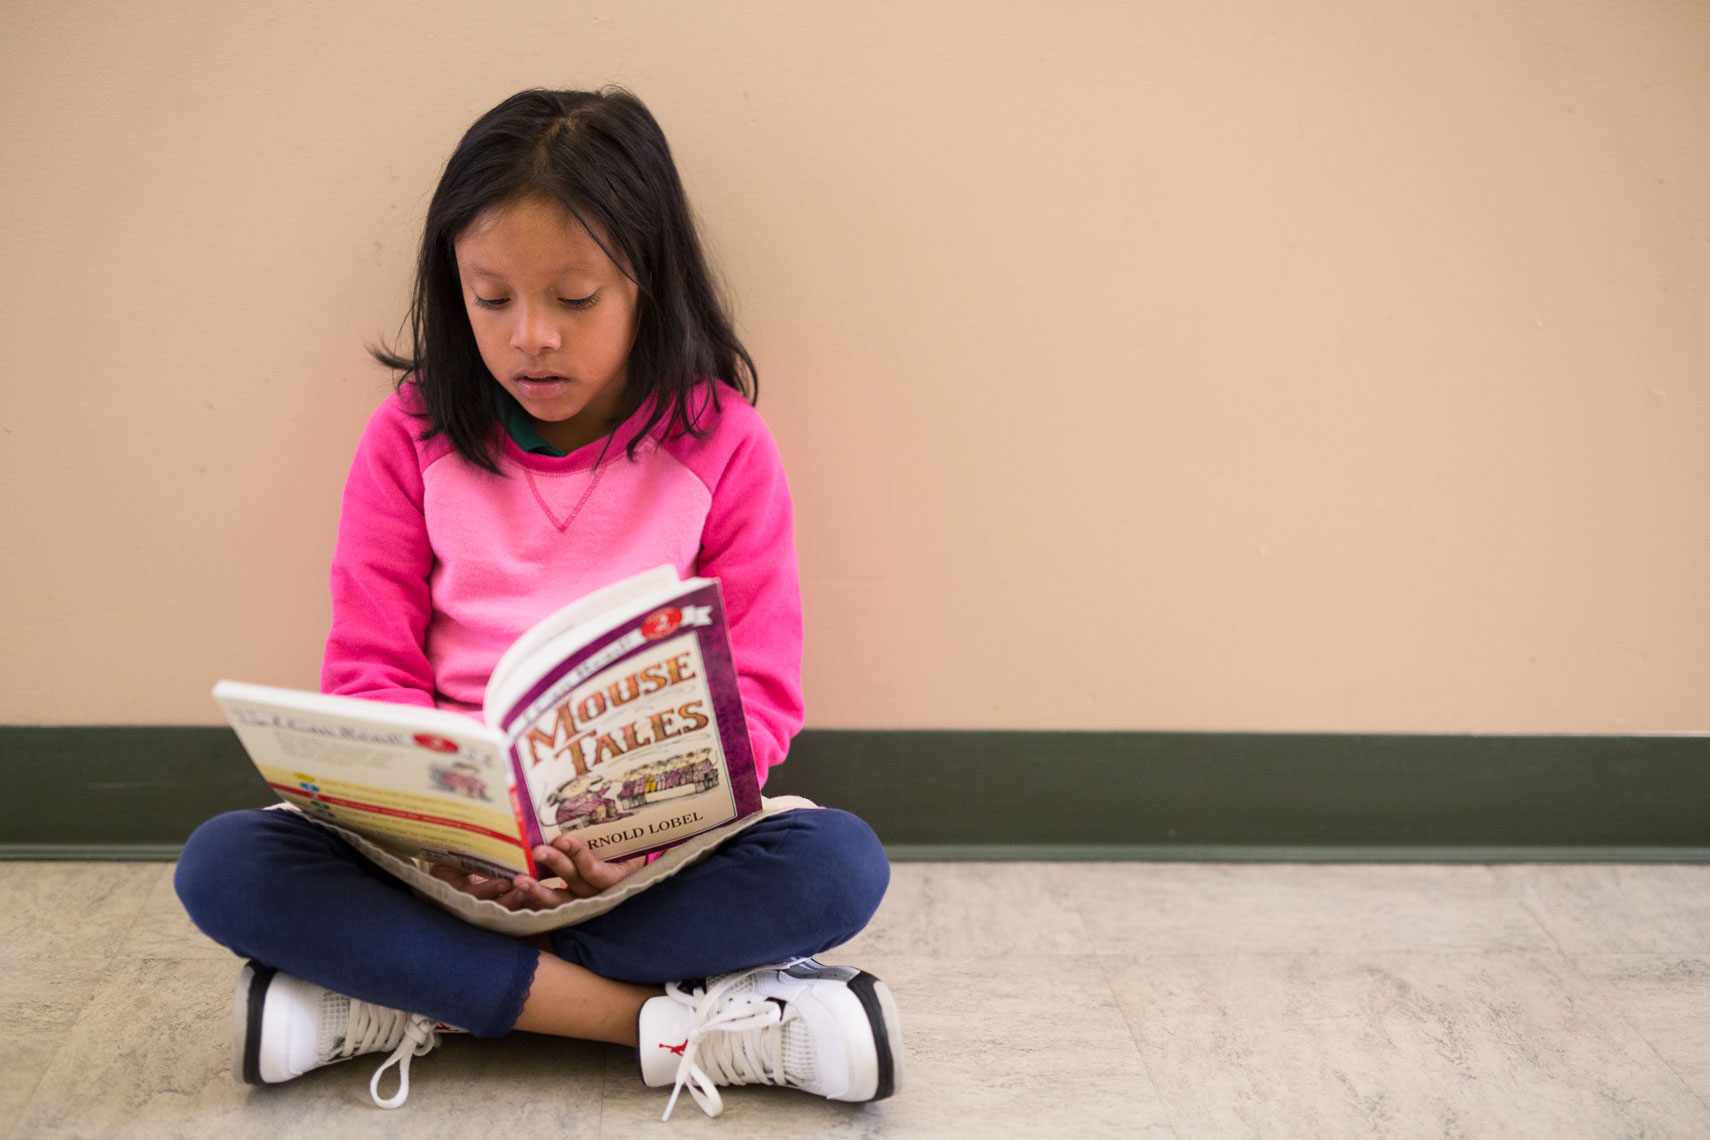 Girl Reads in Hallway at School